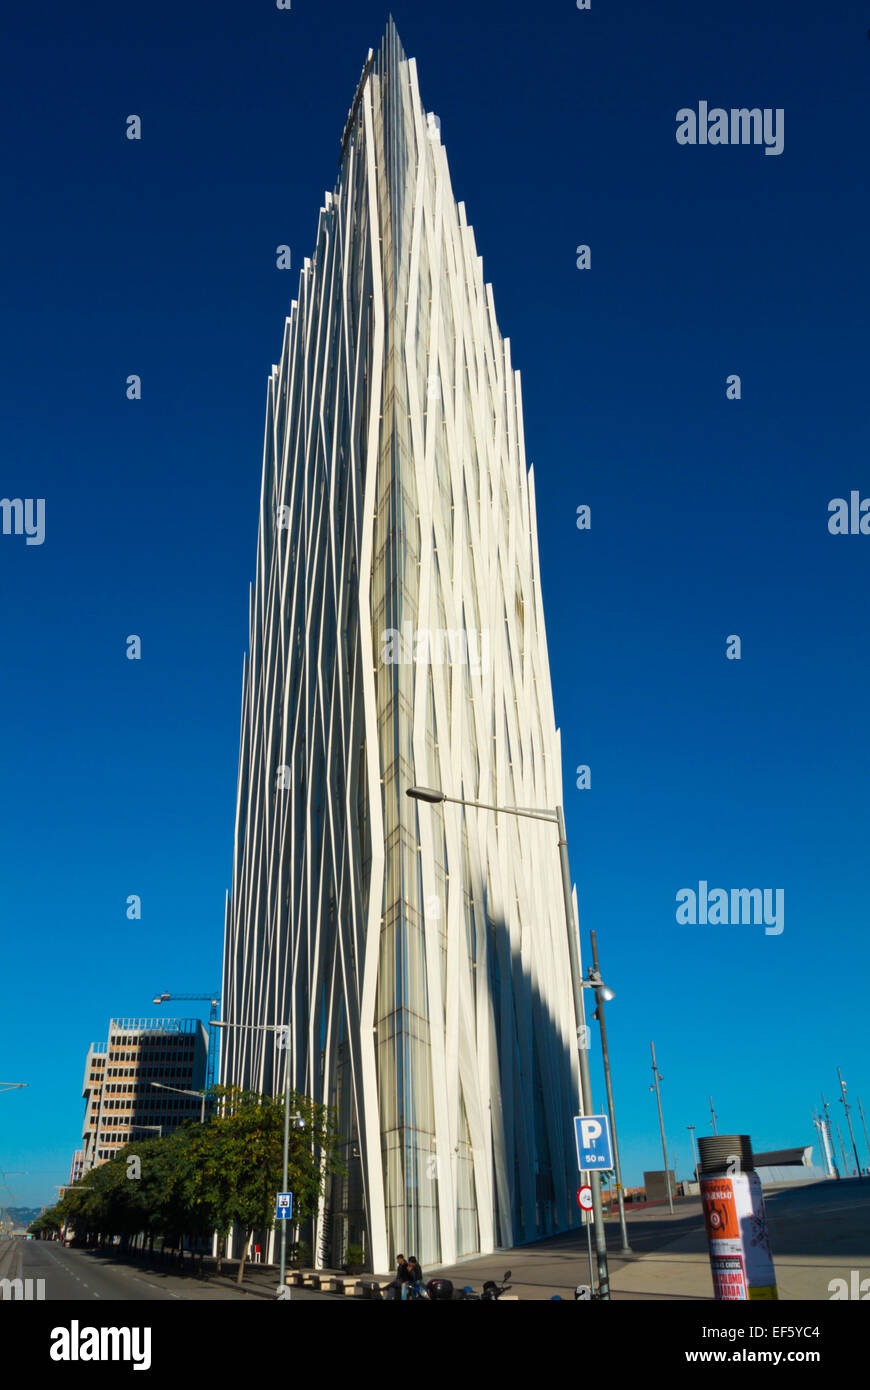 Torre Diagonal Zero Zero building, Forum area, Diagonal Mar, Sant Marti district, Barcelona, Spain - Stock Image